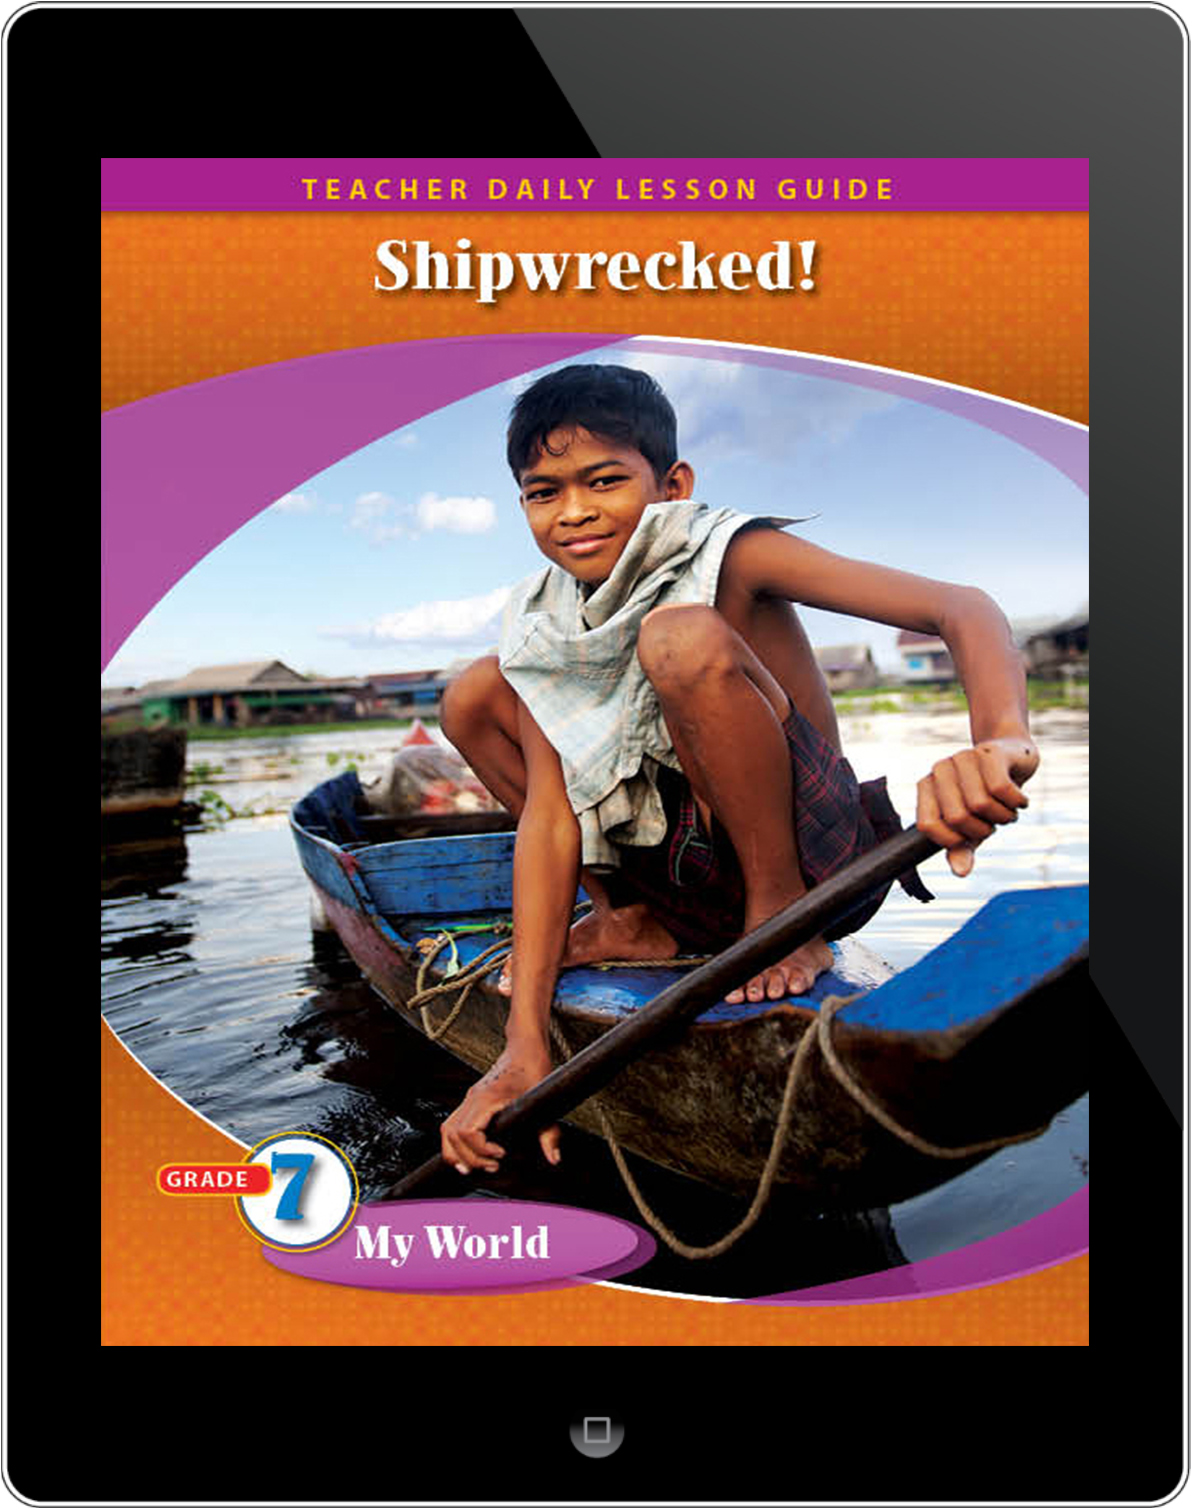 Pathways2.0 Grade 7 My World Unit: Shipwrecked: The True Adventures of a Japanese Boy Daily Lesson Guide 5 Year License